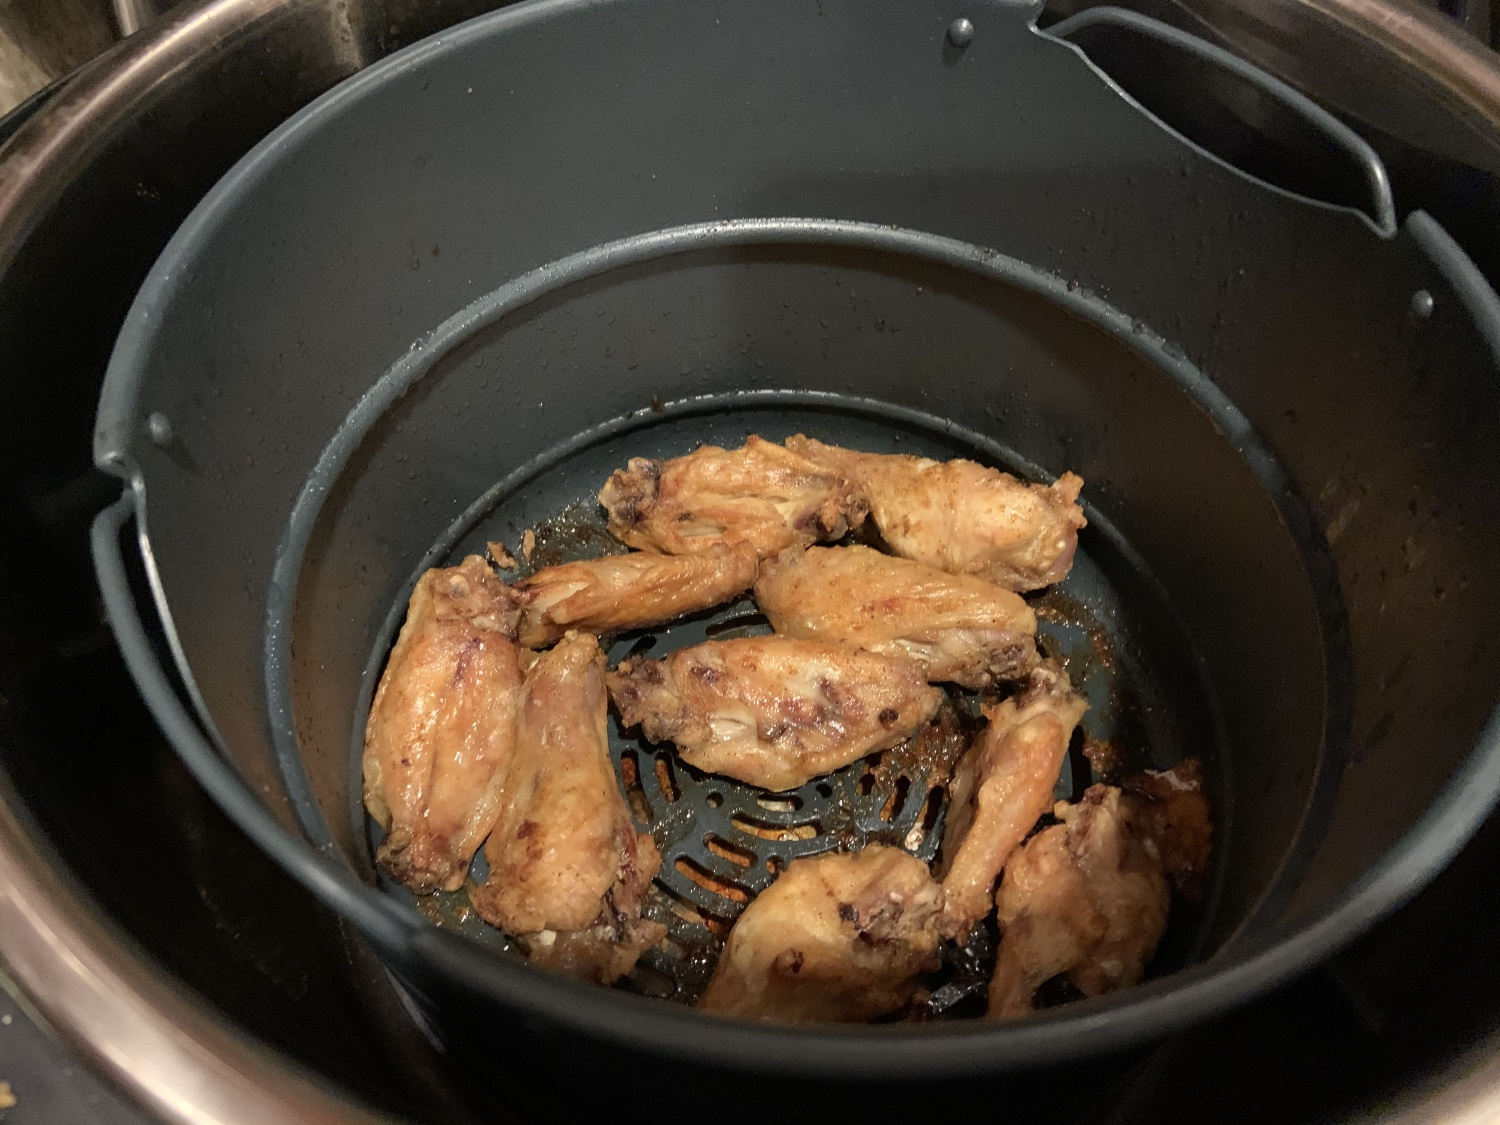 Ninja Foodi or Instant pot Duo Crisp crispy chicken wings